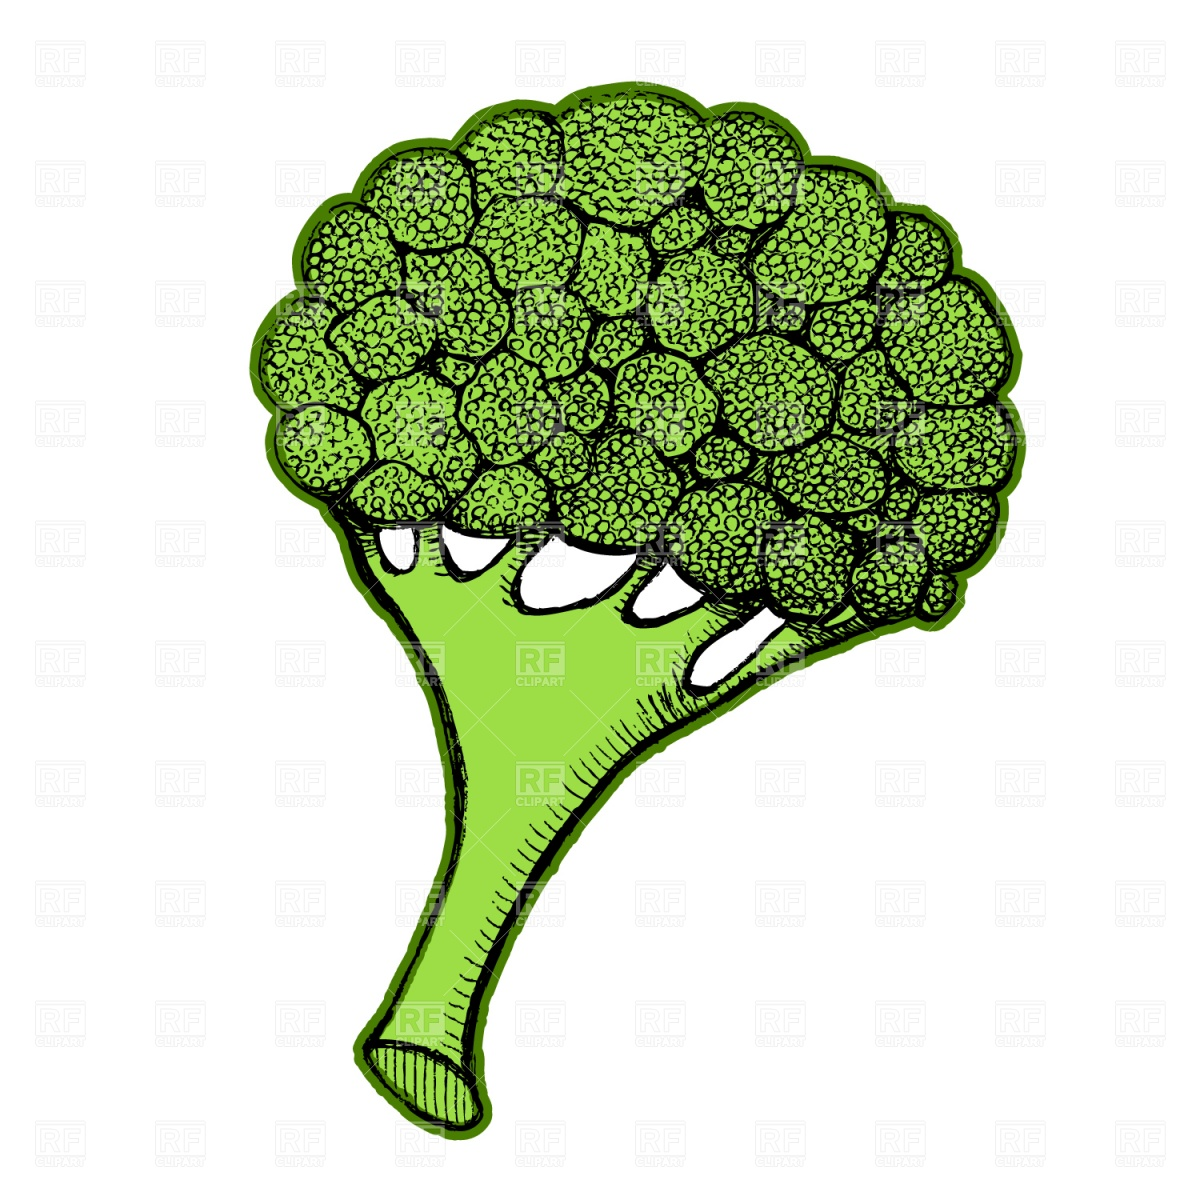 Broccoli Vector Image #1541.